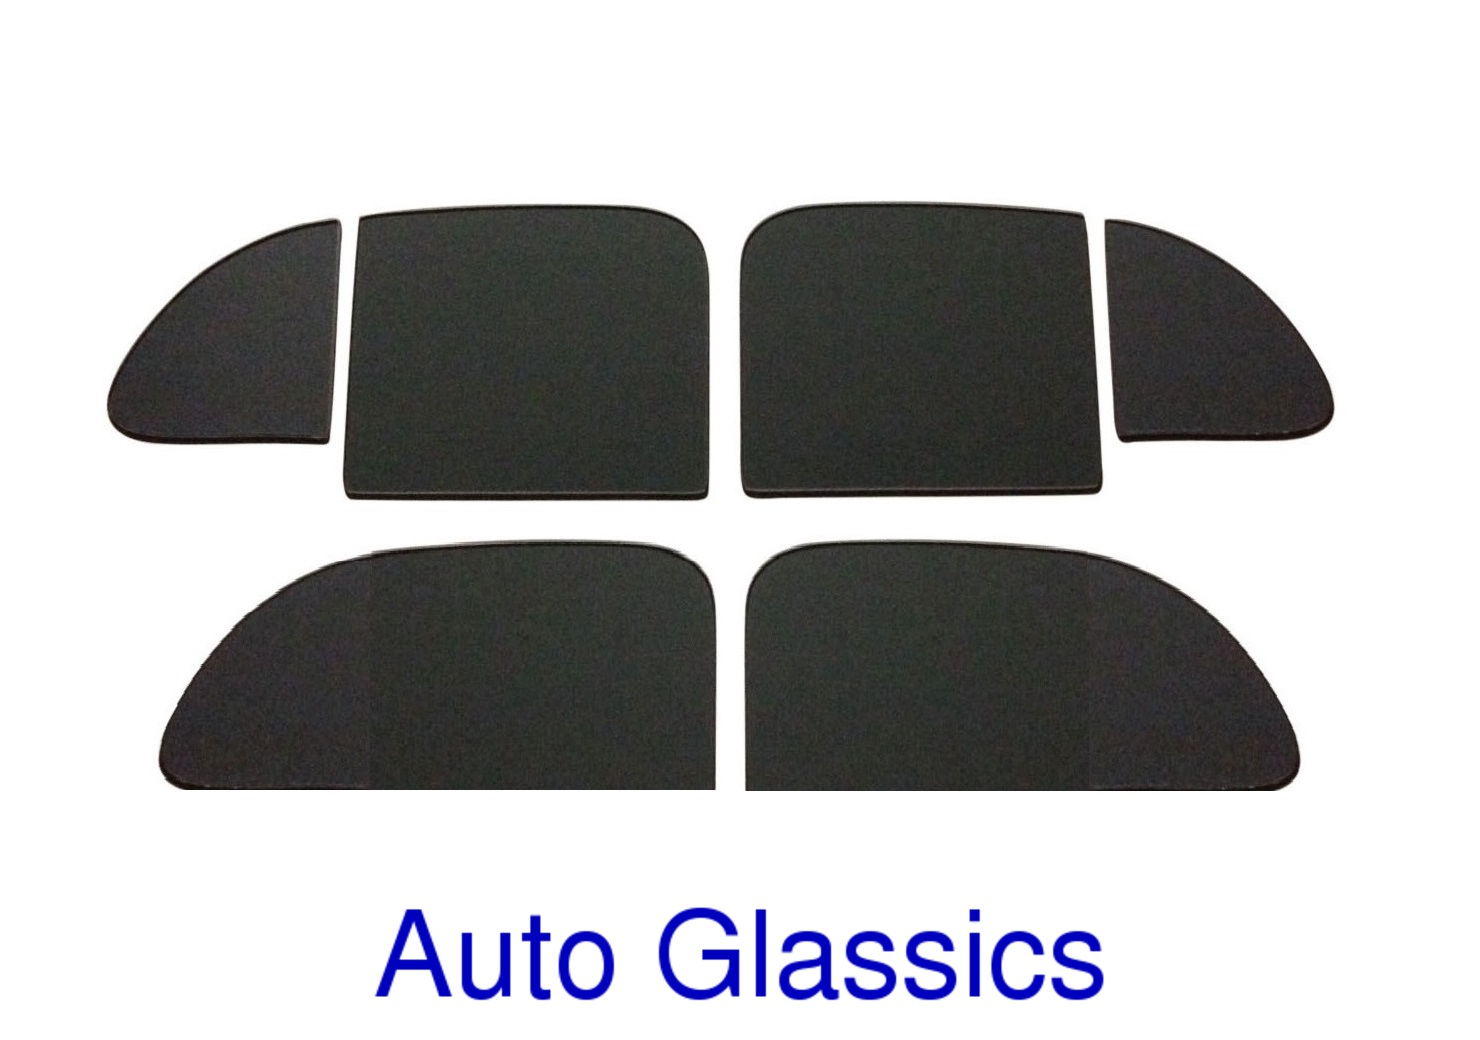 Windshield Gasket For Use With Trim 1949 1950 Oldsmobile Tourback Business Coupe